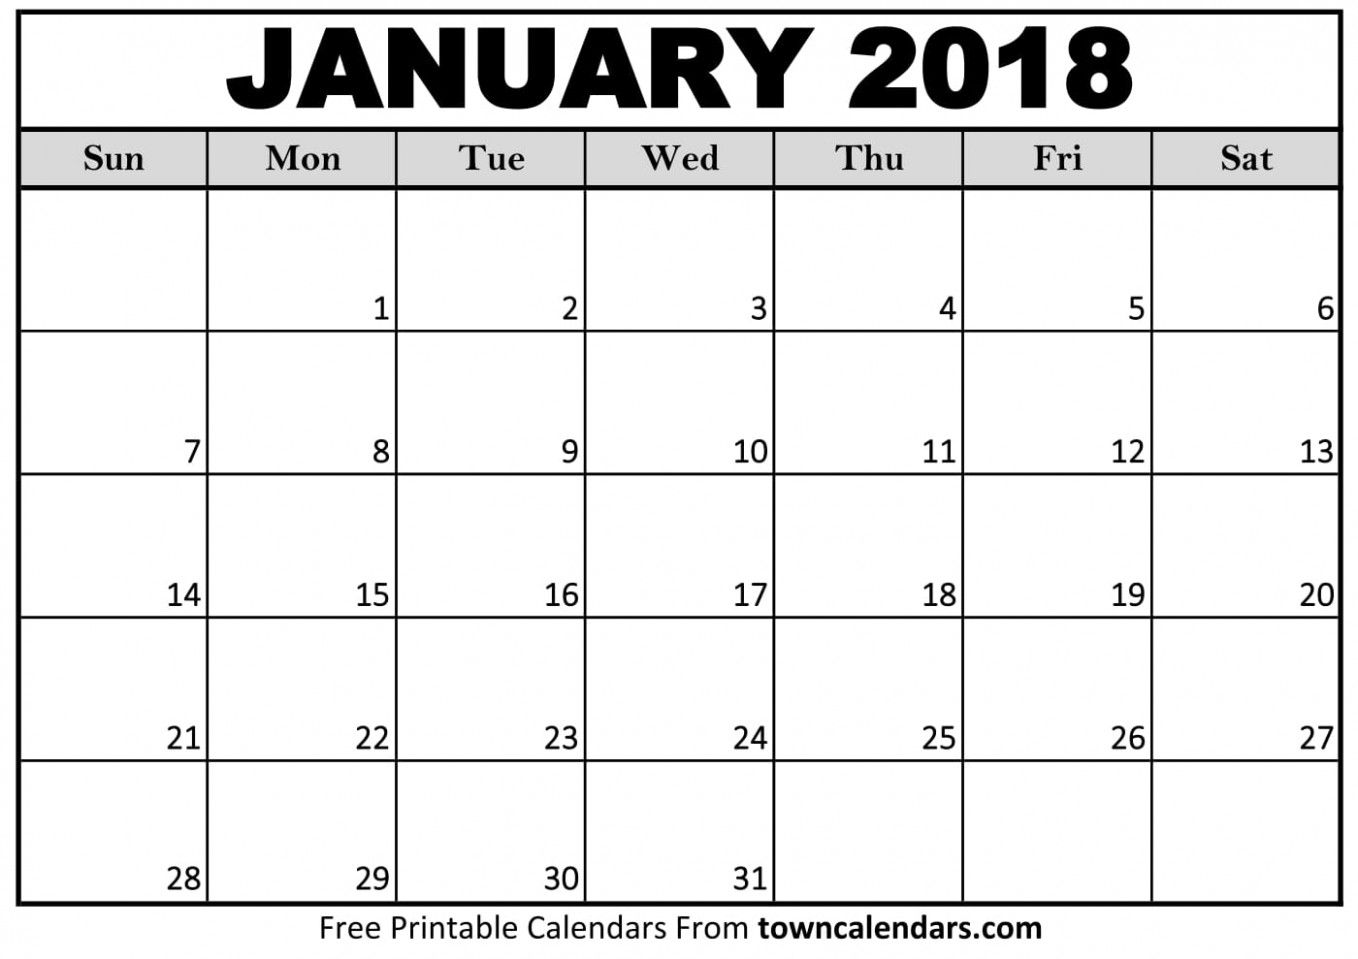 Calendar Template January Everything You Need To Know